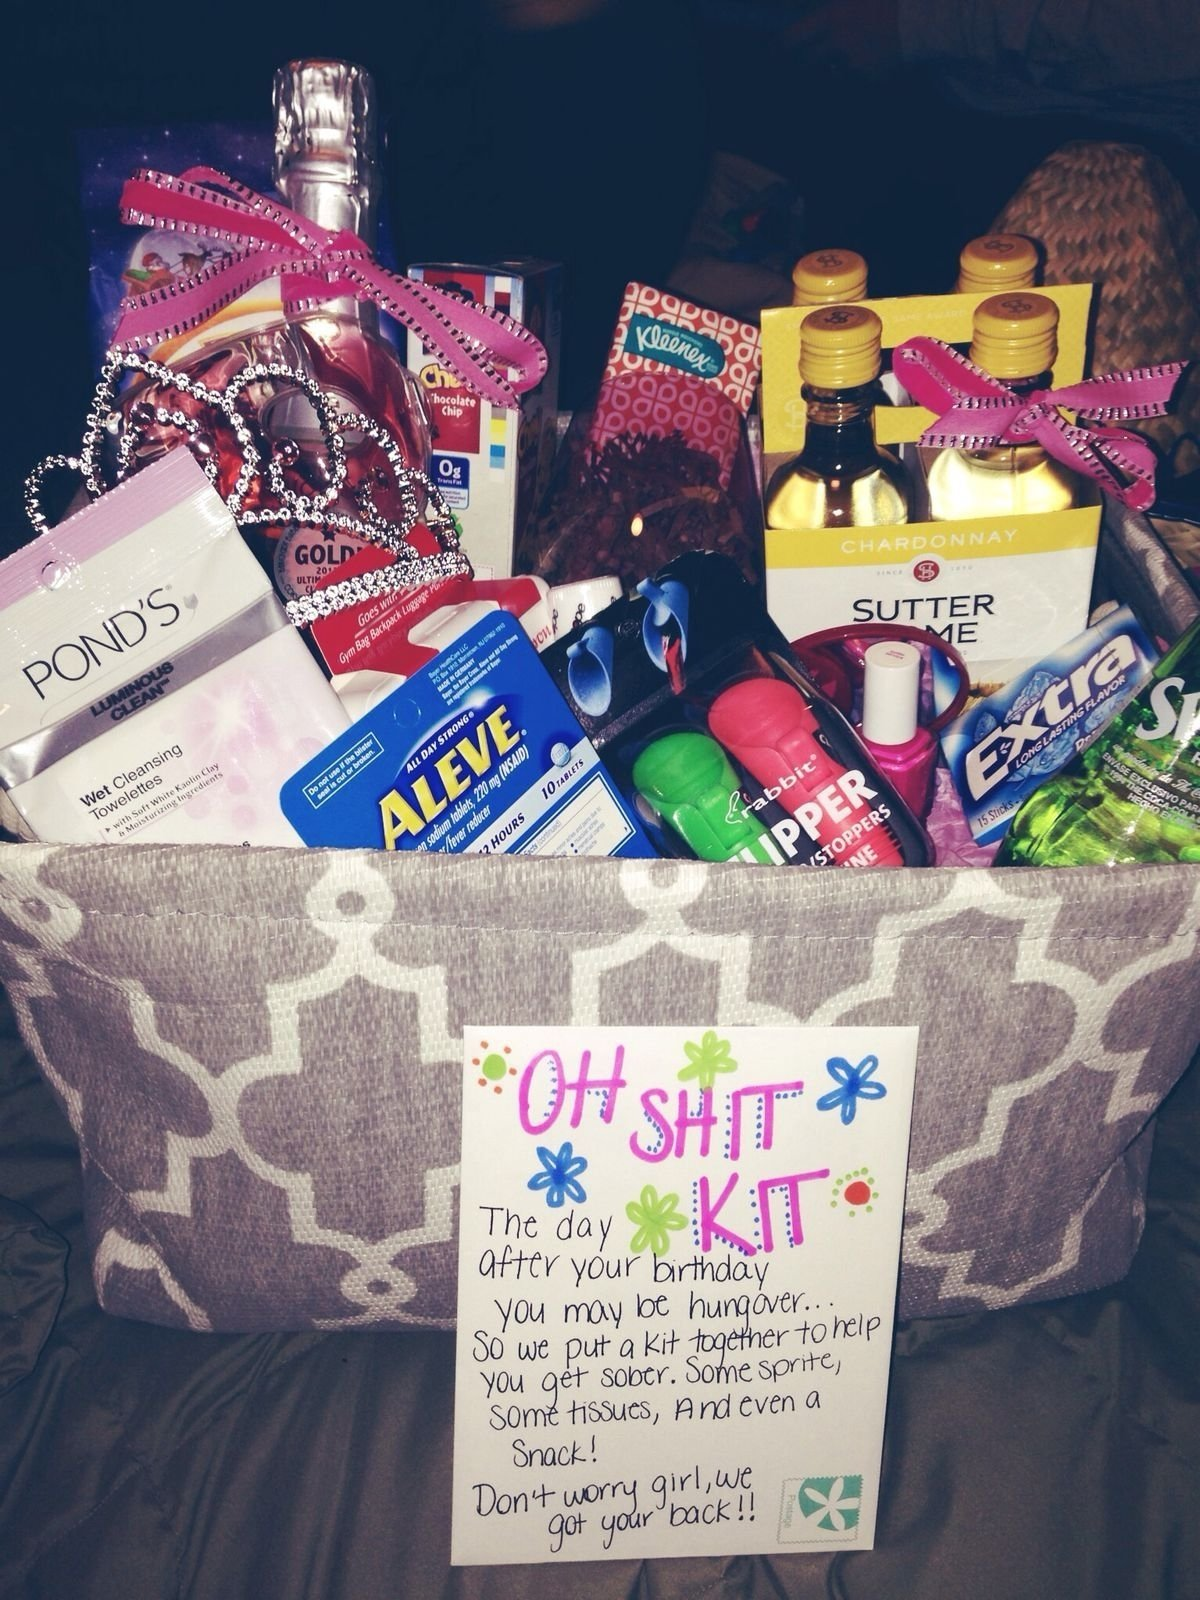 10 Lovable Cute Birthday Ideas For Girlfriend Farewell Letter From Gift 21st And 2